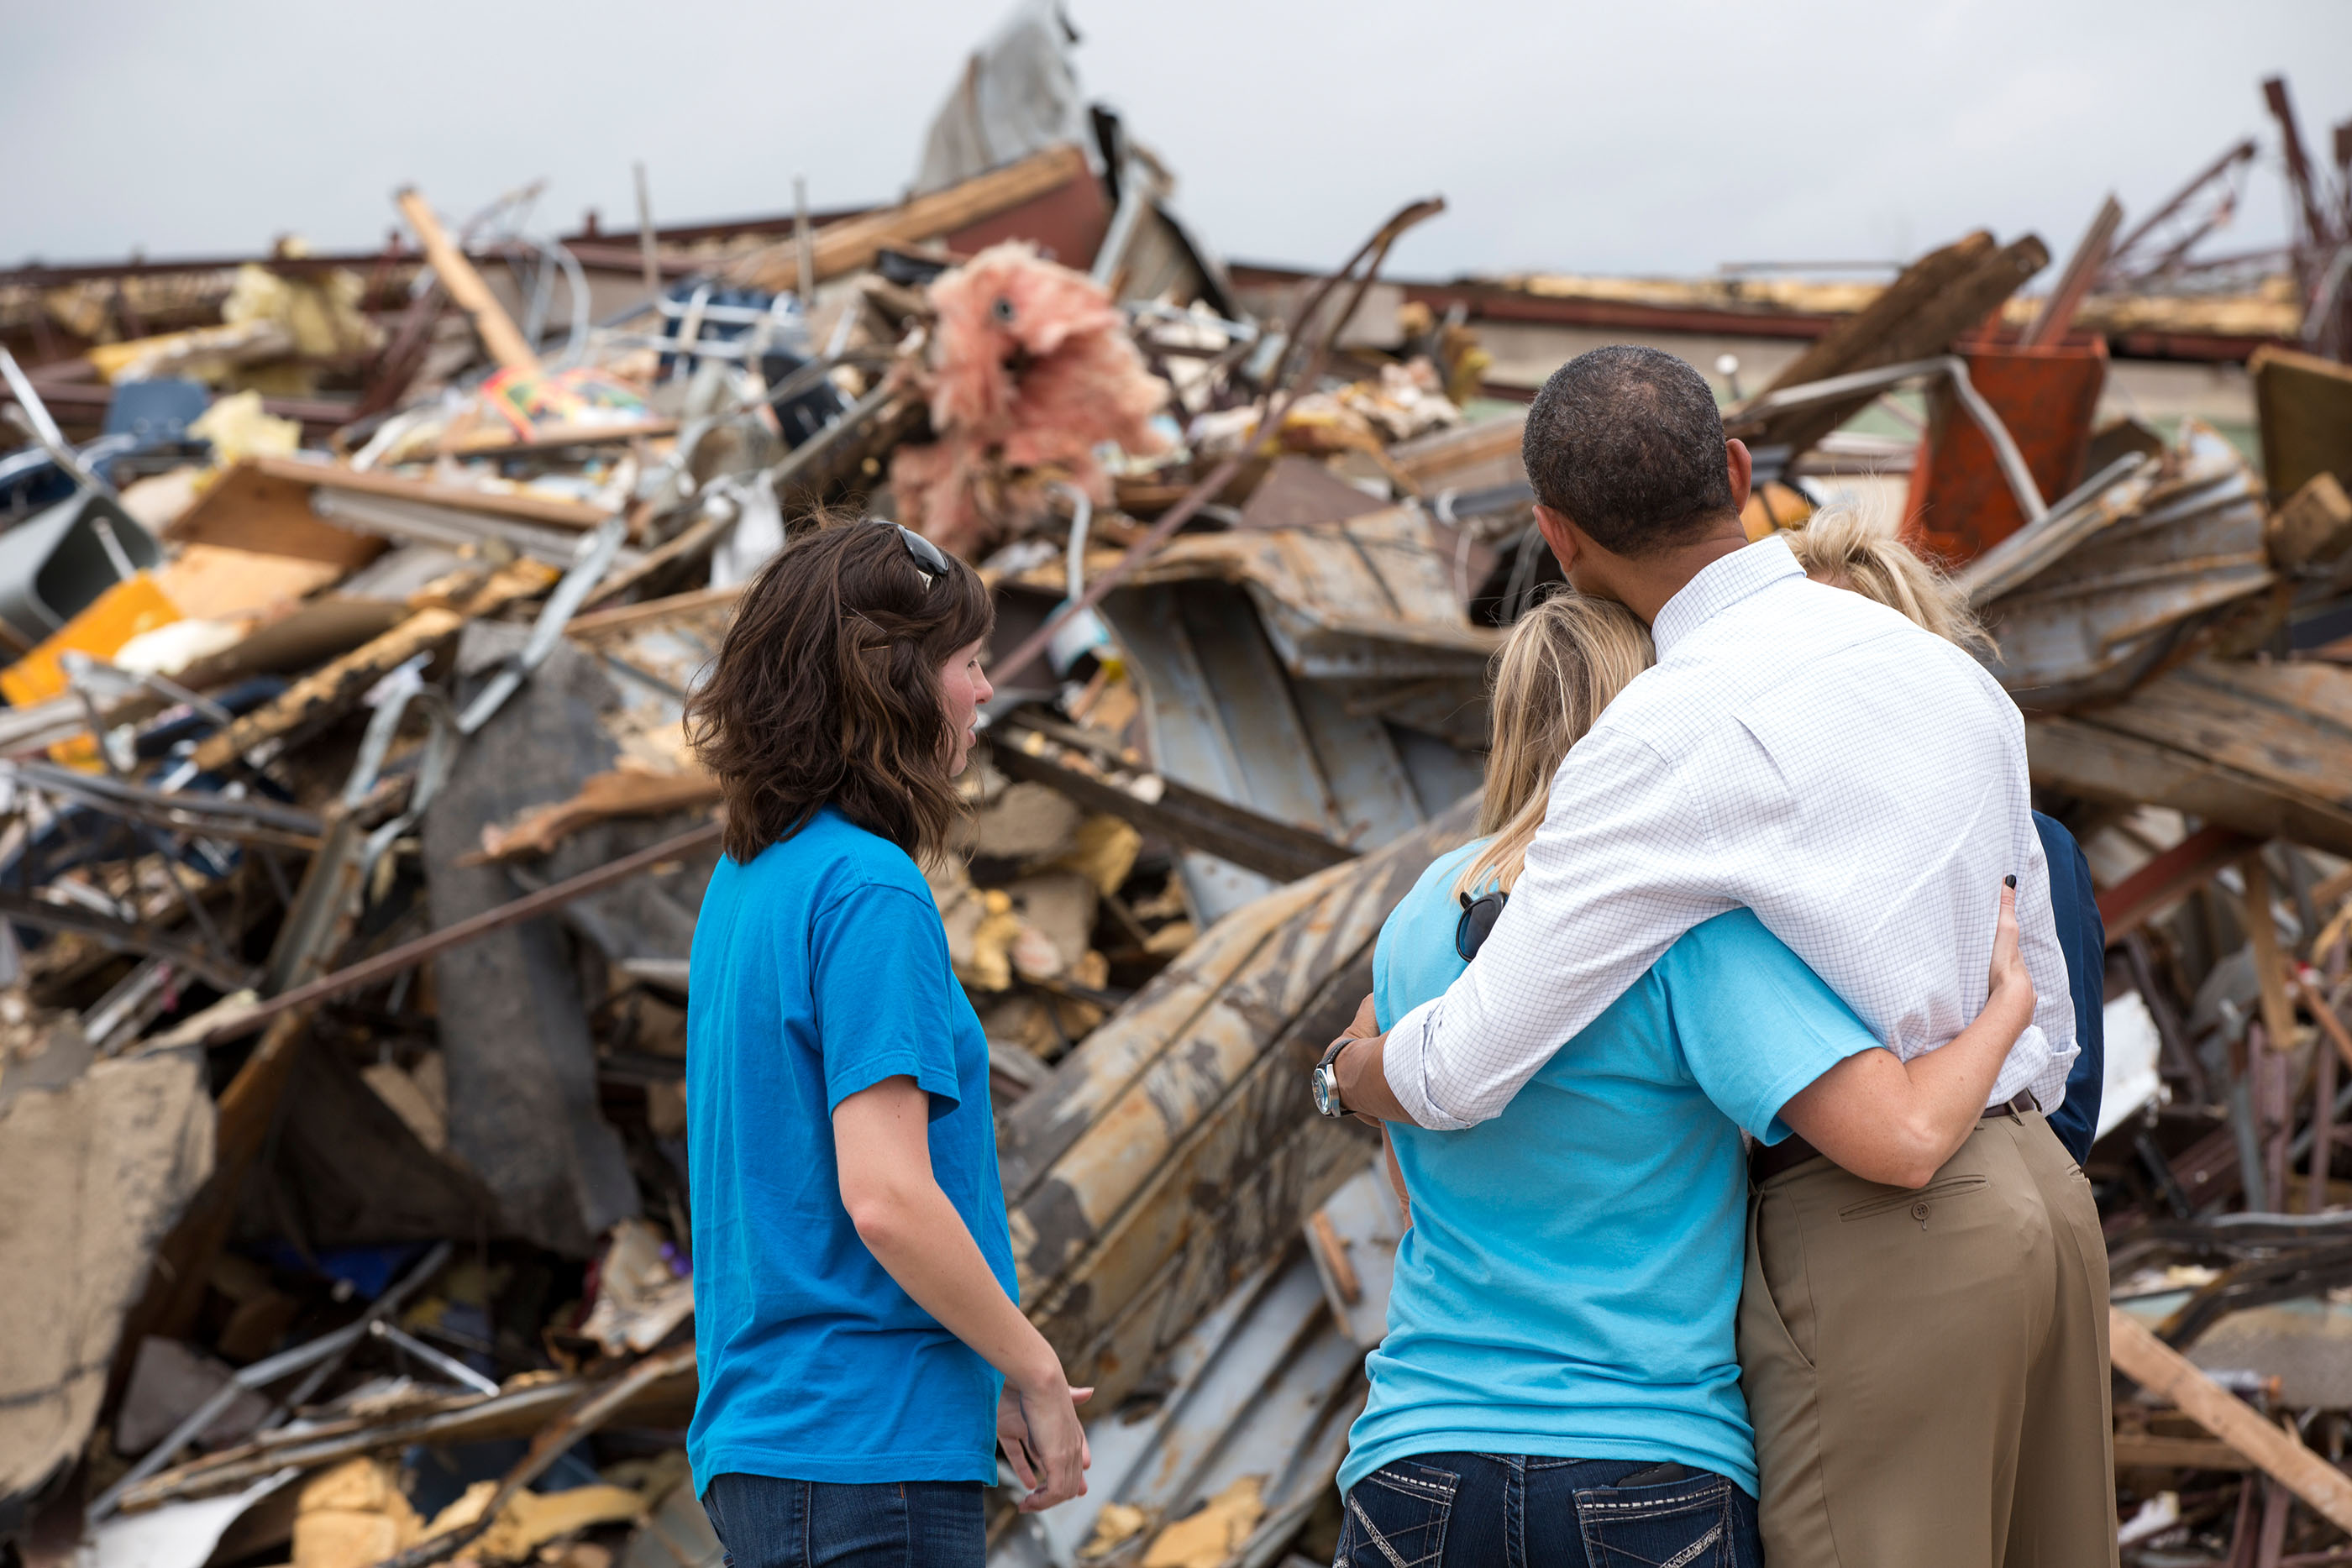 Oklahoma, May 26, 2013. Hugging Amy Simpson, principal of Plaza Towers Elementary School, while viewing the remains of the school following a devastating tornado in Moore. (Official White House Photo by Pete Souza)